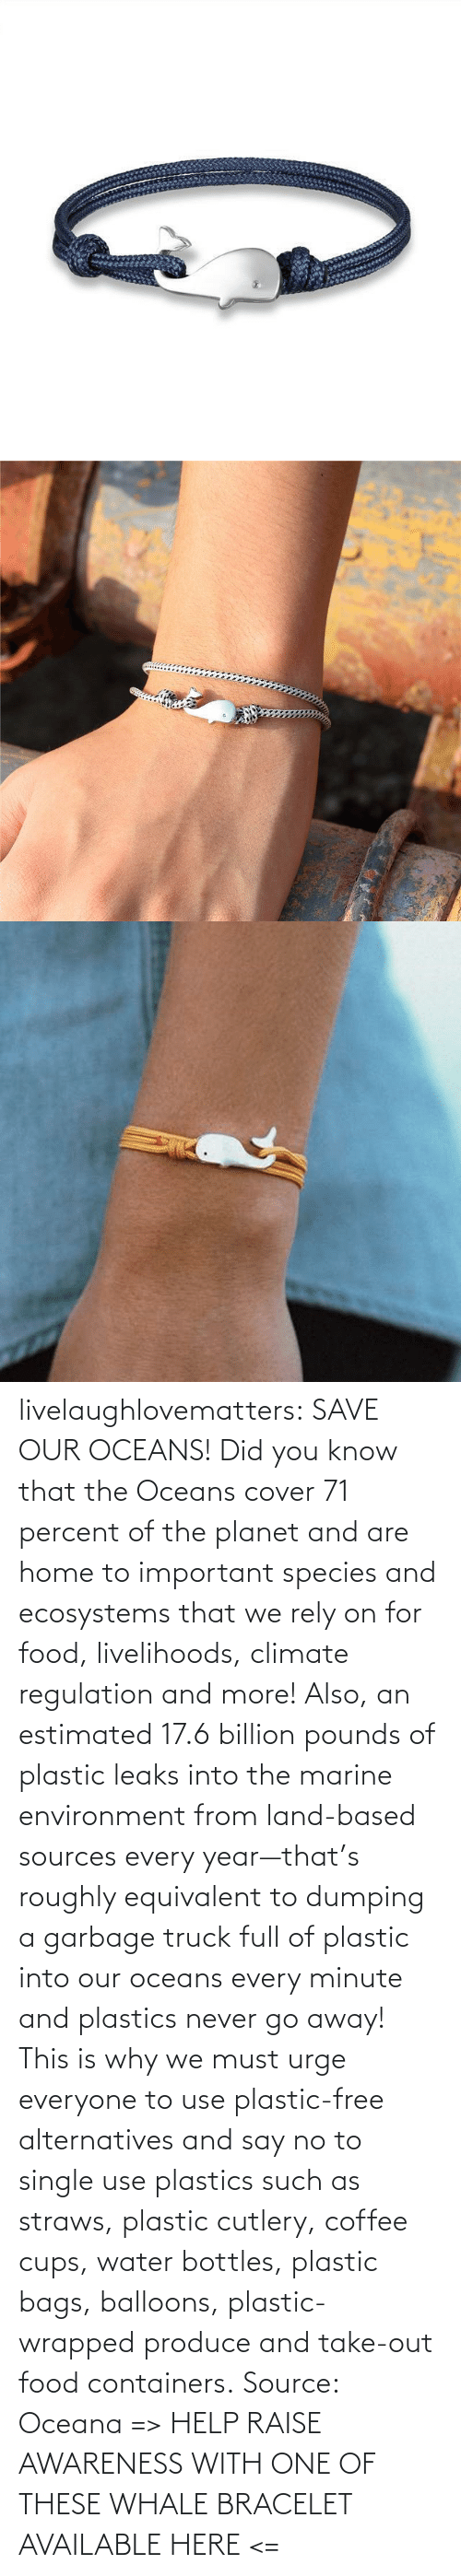 Food, Gif, and Tumblr: livelaughlovematters: SAVE OUR OCEANS!  Did you know that the Oceans cover 71 percent of the planet and are home to important species and ecosystems that we rely on for food, livelihoods, climate regulation and more! Also, an estimated 17.6 billion pounds of plastic leaks into the marine environment from land-based sources every year—that's roughly equivalent to dumping a garbage truck full of plastic into our oceans every minute and plastics never go away! This is why we must urge everyone to use plastic-free alternatives and say no to single use plastics such as straws, plastic cutlery, coffee cups, water bottles, plastic bags, balloons, plastic-wrapped produce and take-out food containers. Source: Oceana => HELP RAISE AWARENESS WITH ONE OF THESE WHALE BRACELET AVAILABLE HERE <=